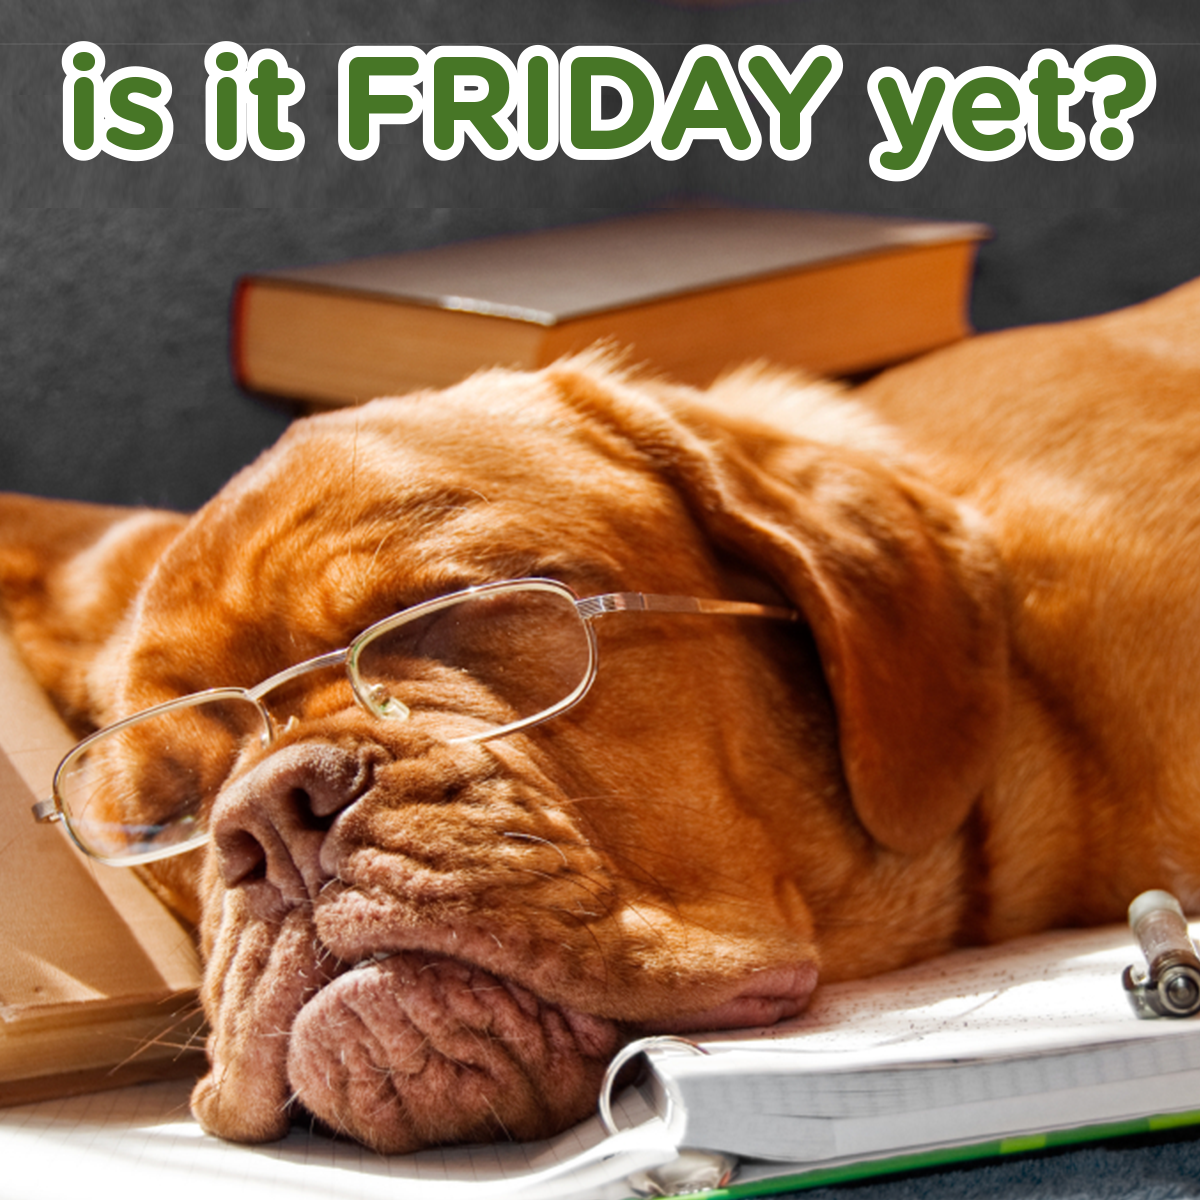 It's finally Friday! Smartest dogs, Senior pet care, Dogs